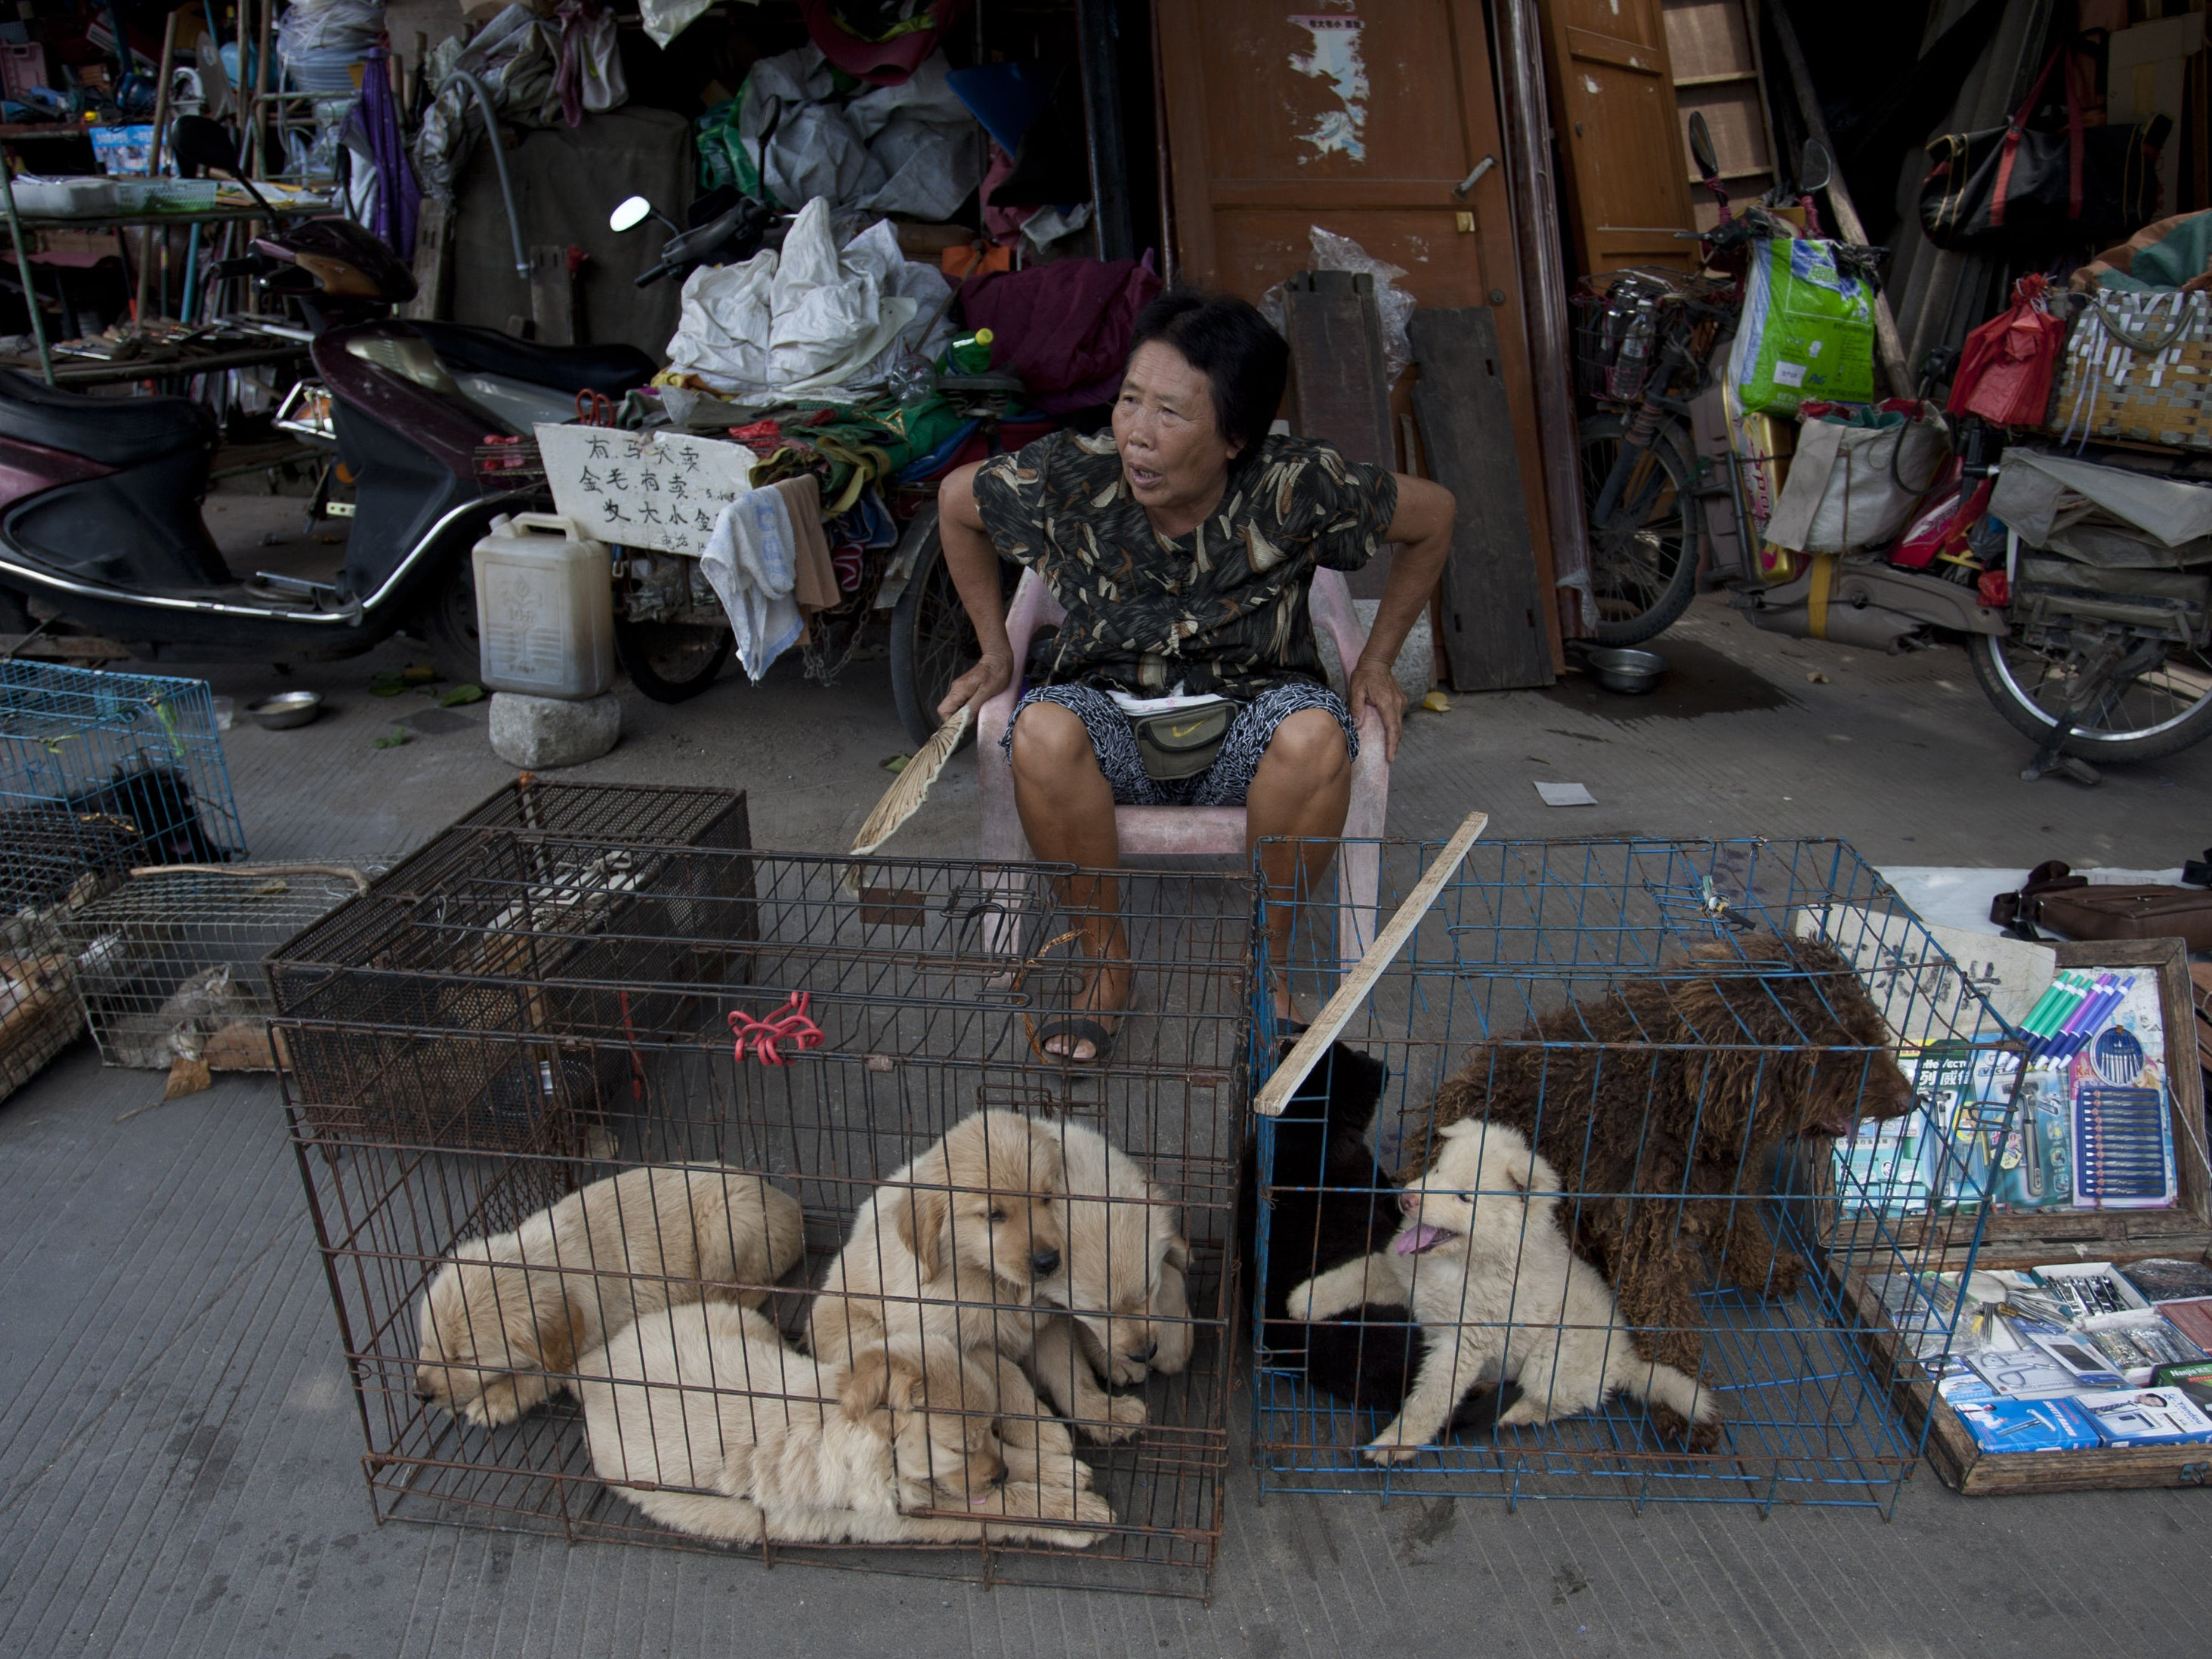 Samsclub Credit Login >> Yulin dog meat festival: When is publishing a photograph too far? | The Independent